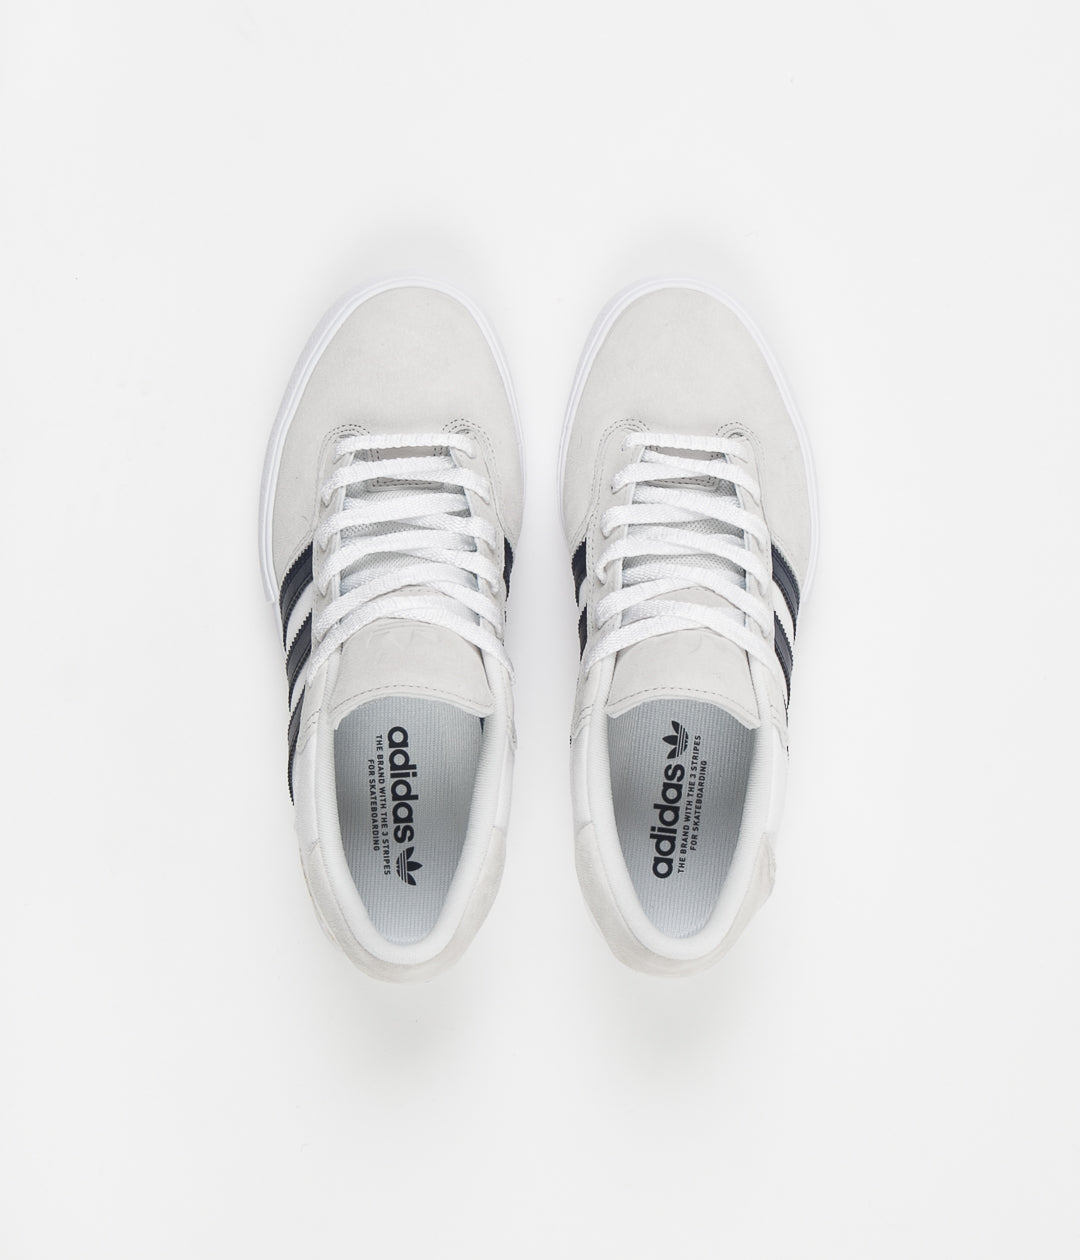 Adidas Matchbreak Super Shoes - Crystal White / Collegiate Navy / White